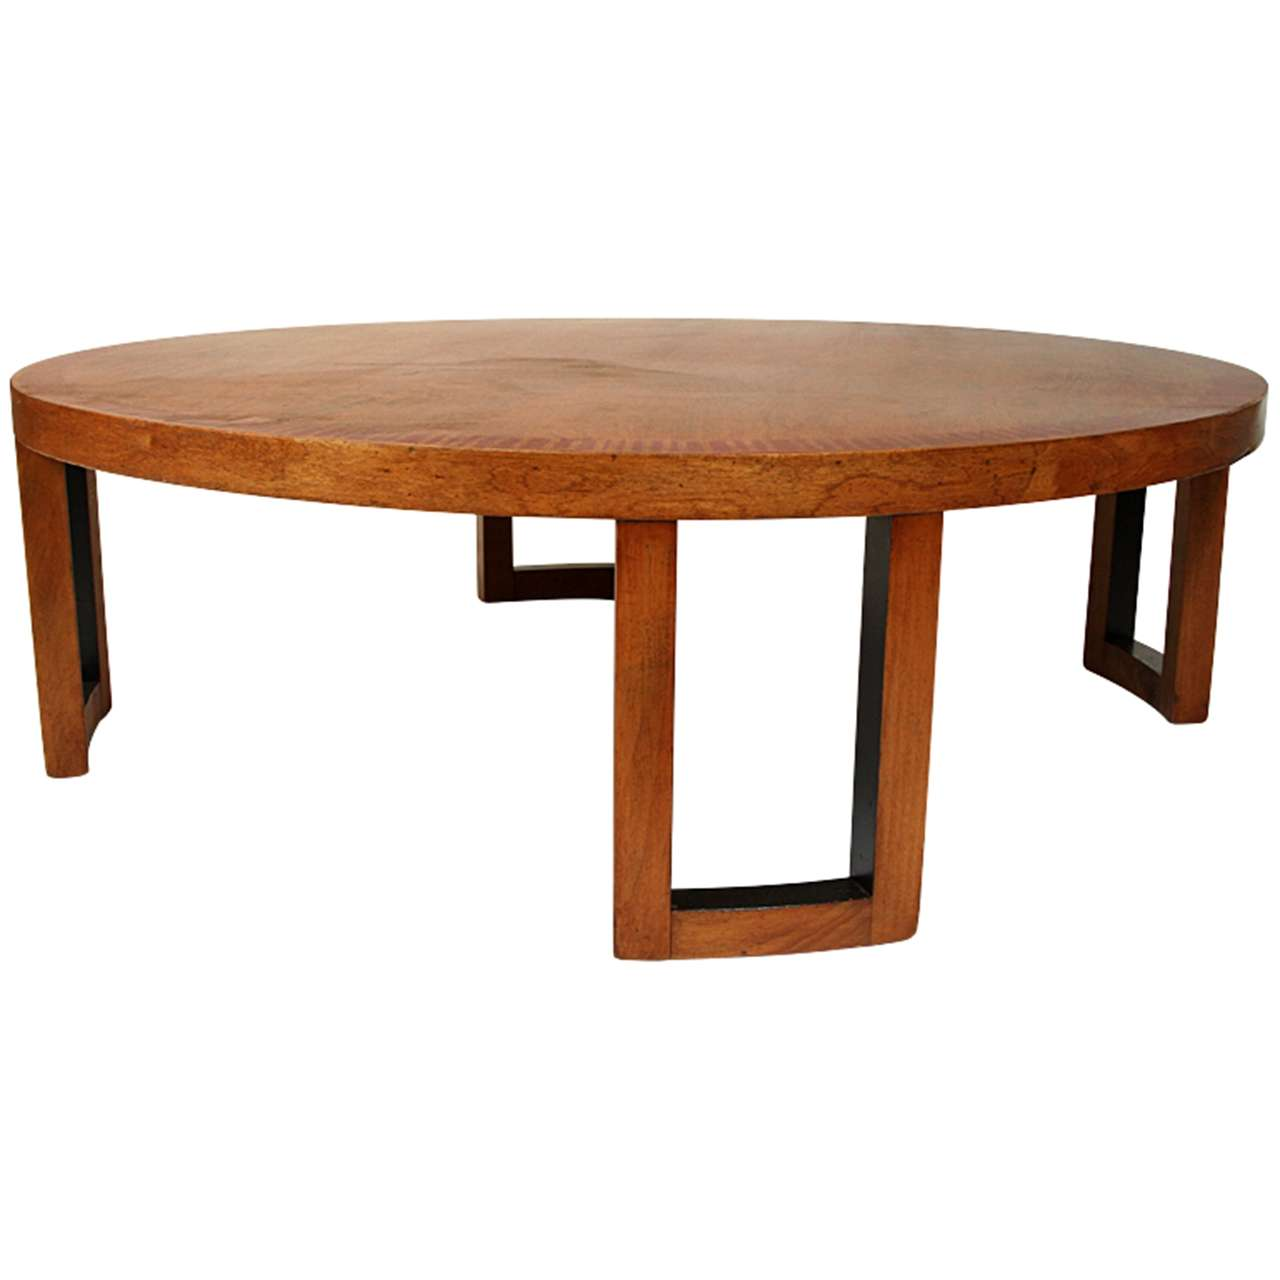 Van Keppel And Green Round Coffee Table At 1stdibs